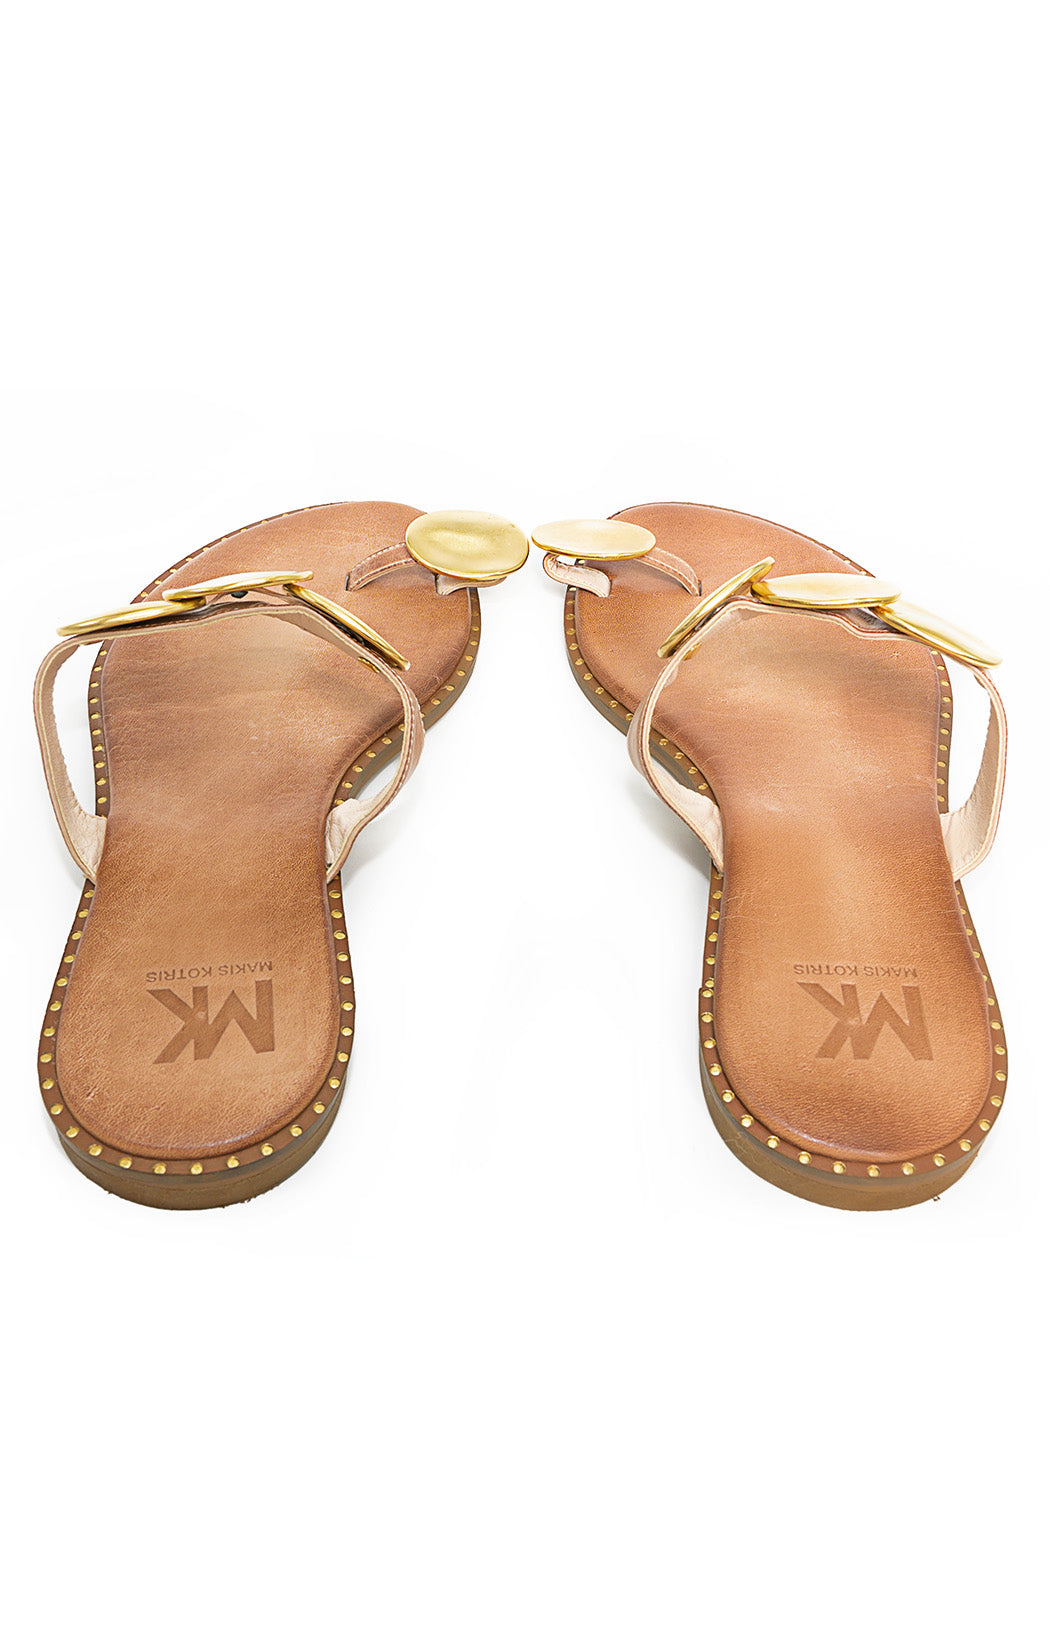 Back view of MAKIS KOTRIS Sandals